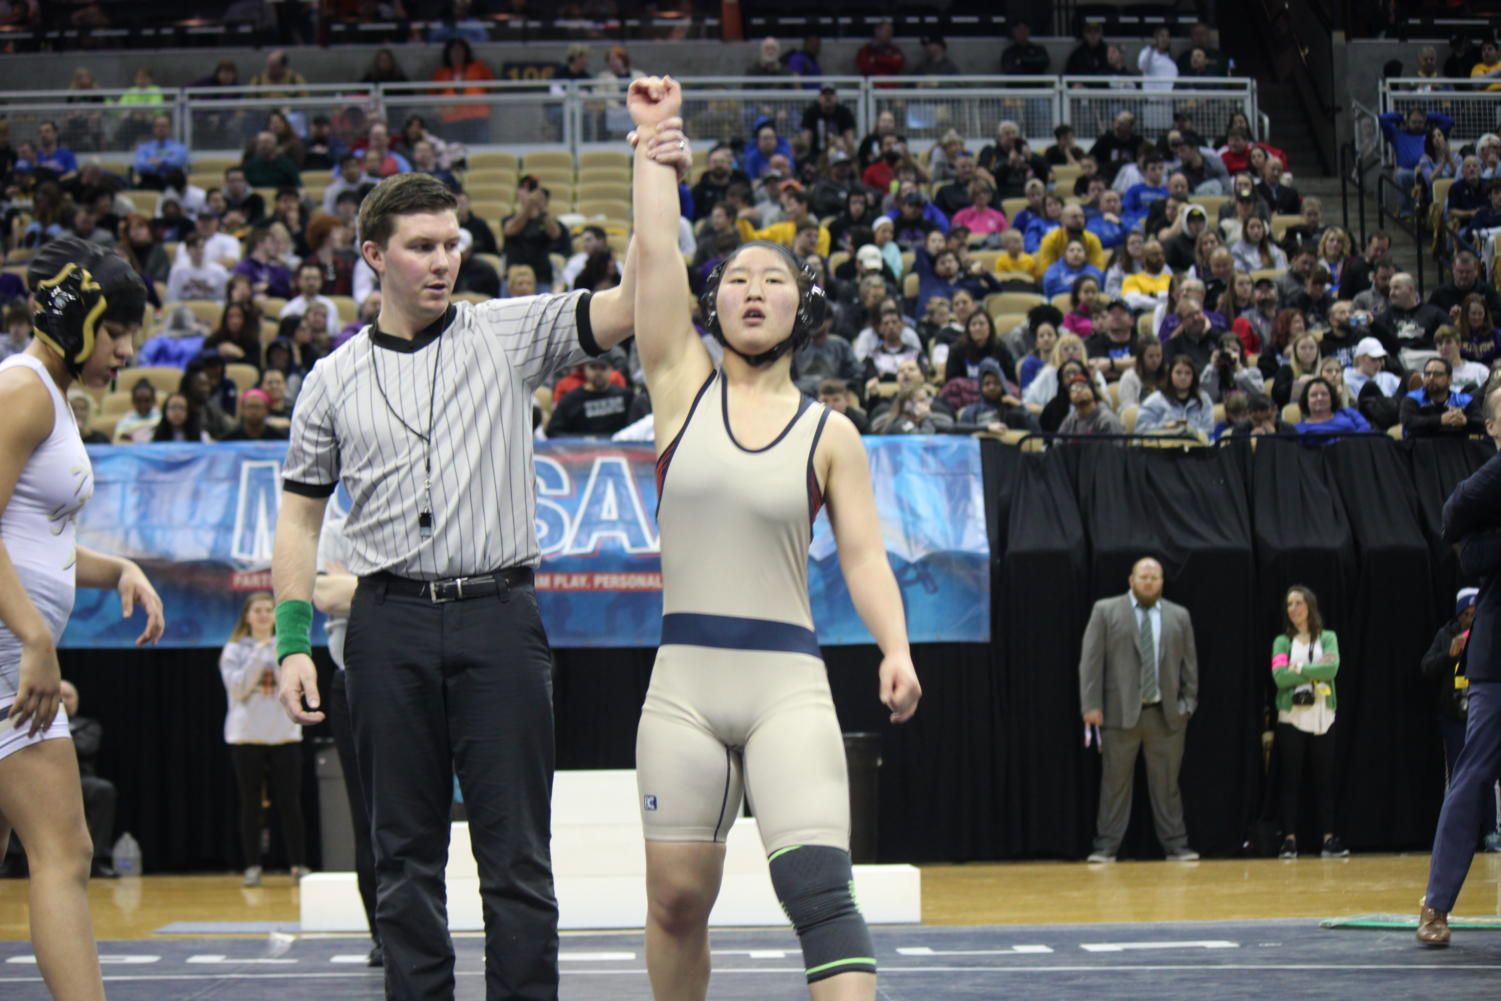 Esther Han ('22) takes home the gold at the Wrestling State Tournament.